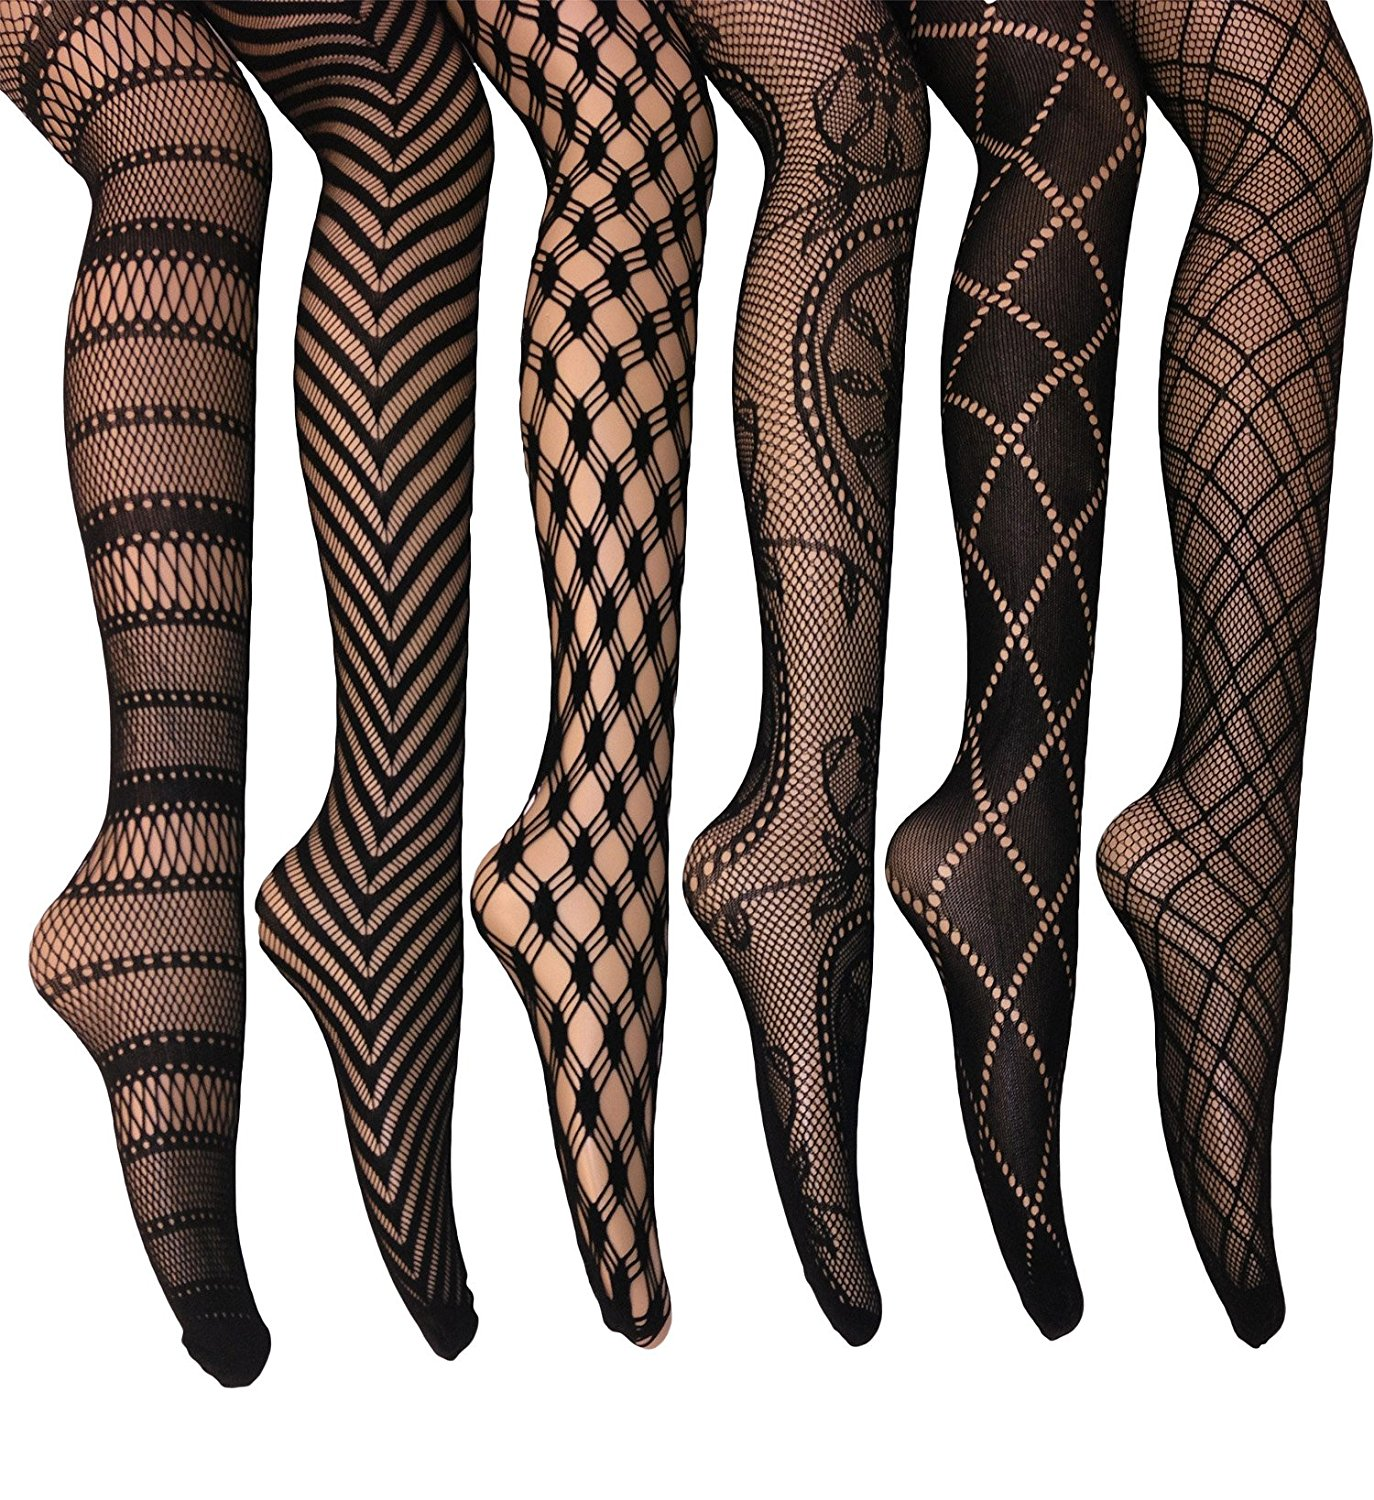 2d7ed53b9ea73 Get Quotations · Frenchic Fishnet Women's Lace Stockings Tights Sexy  Pantyhose Extended Sizes (Pack of ...